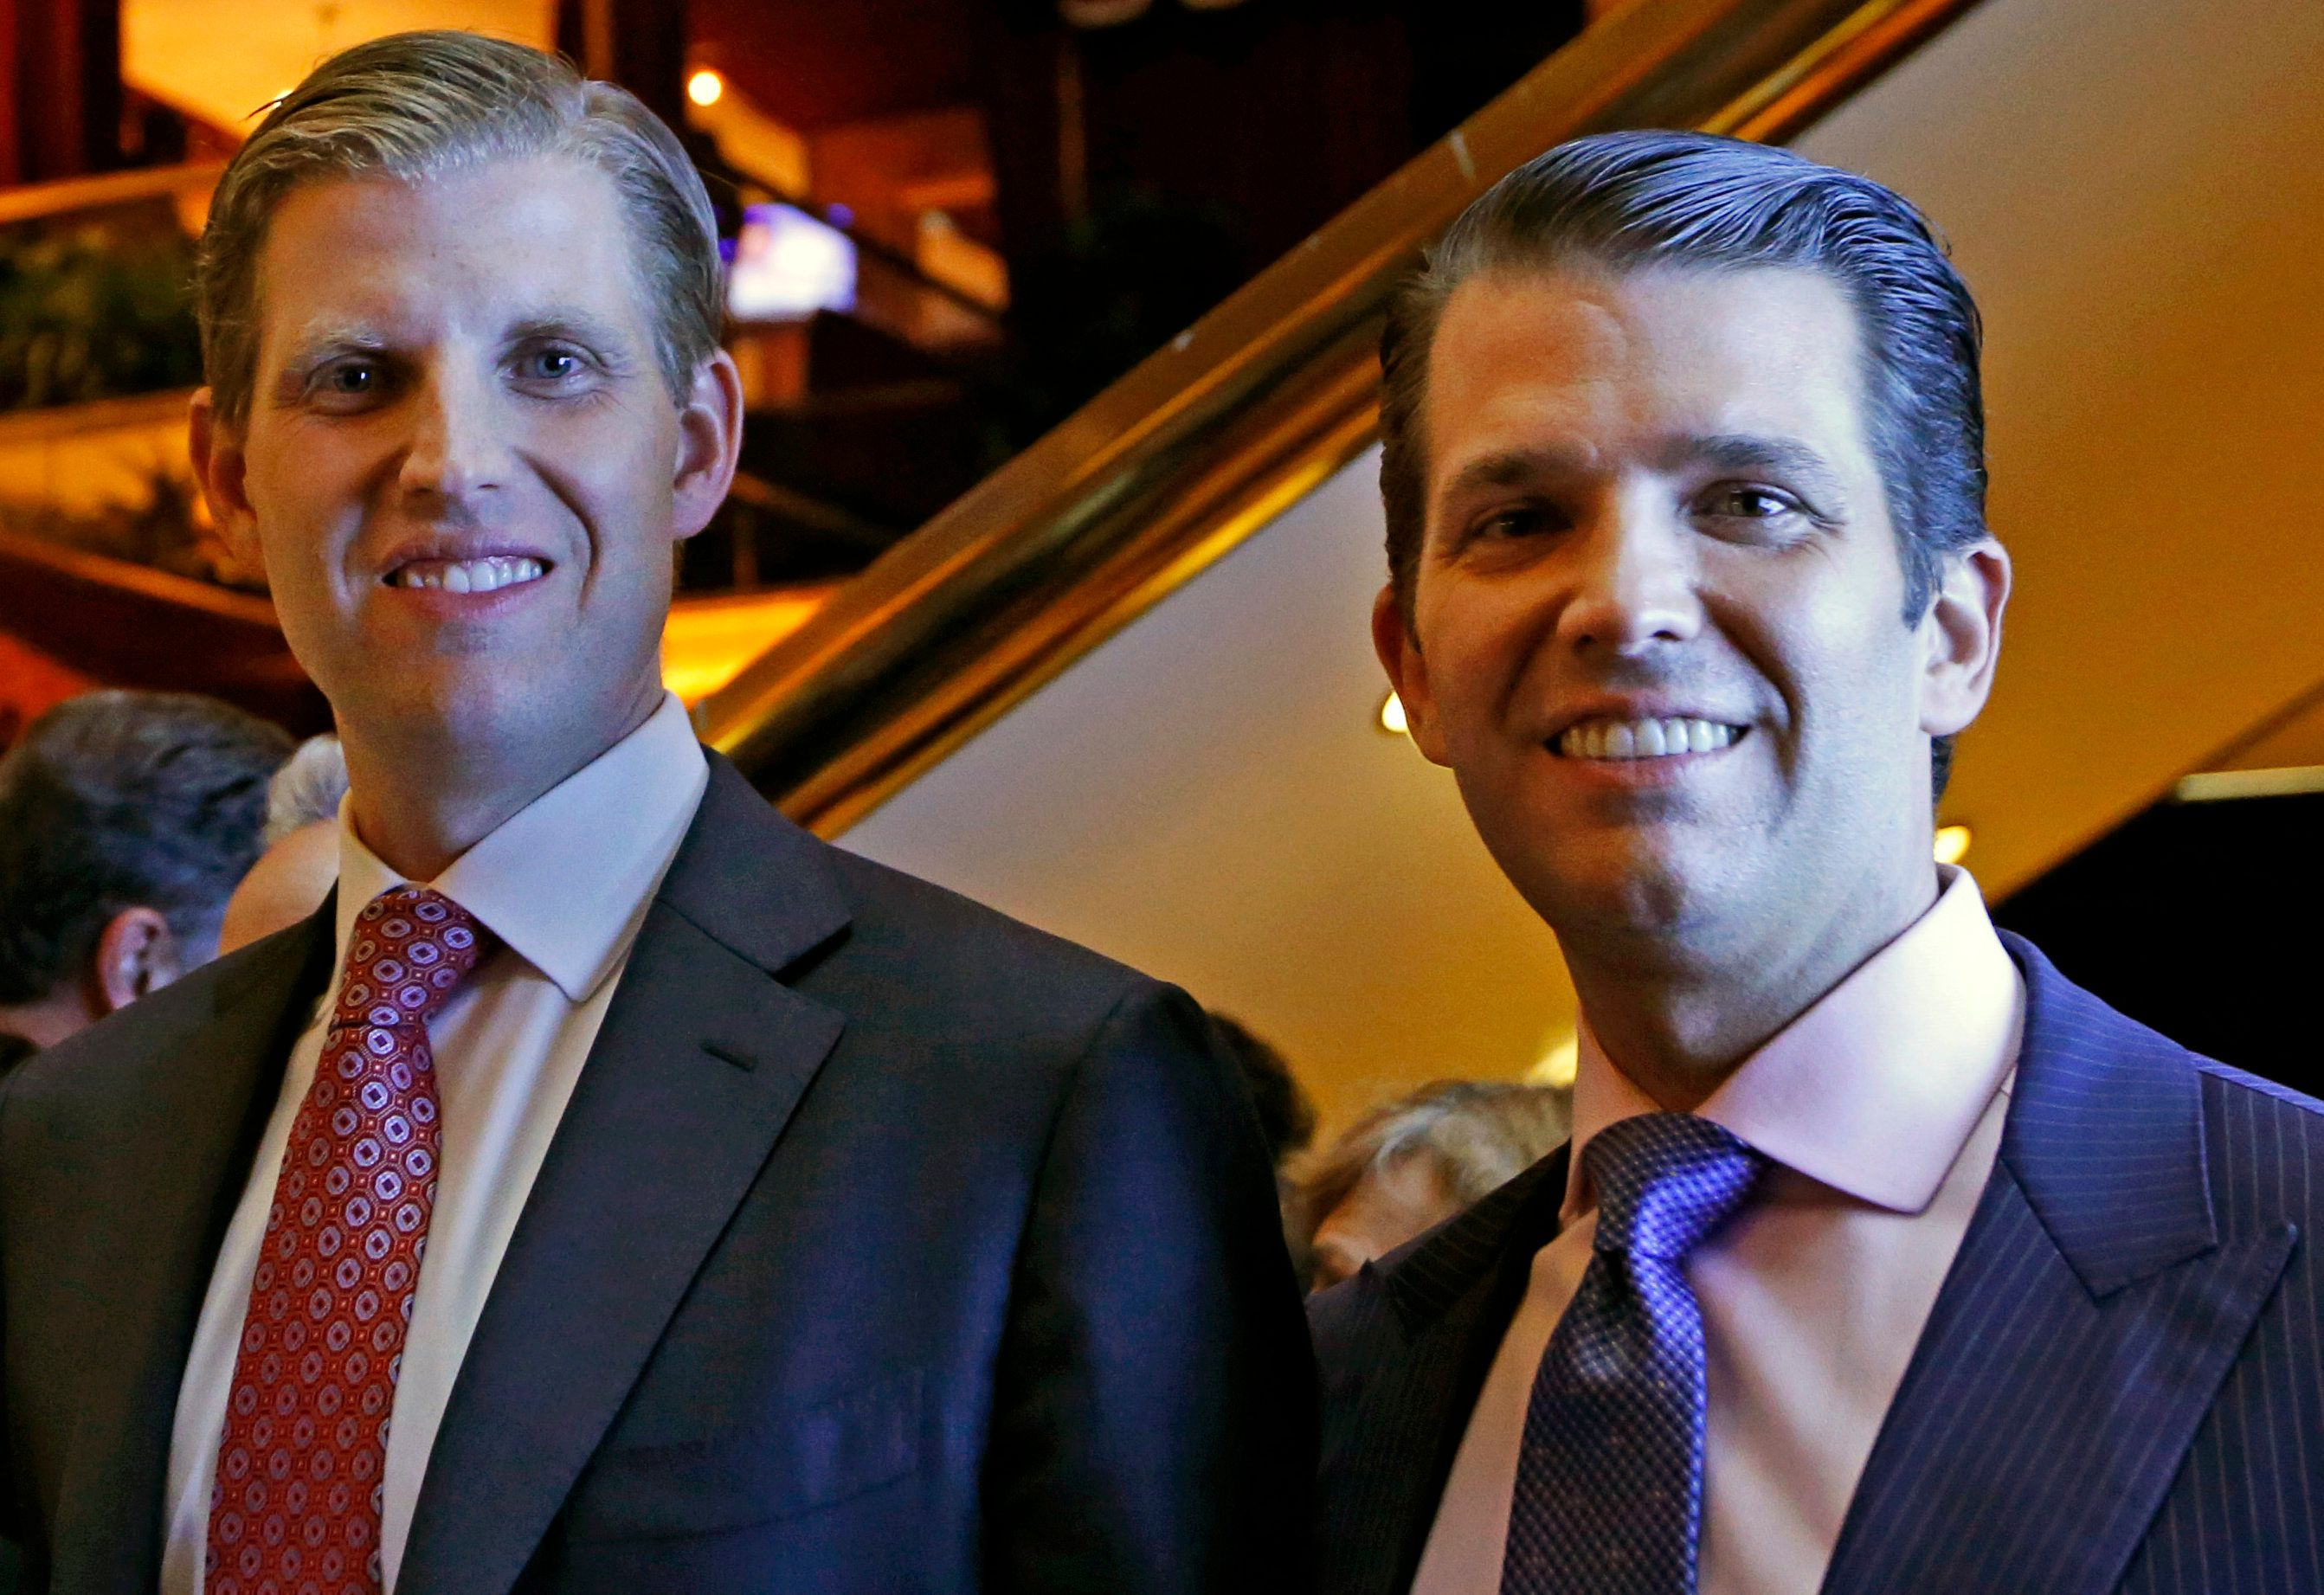 Trump Organization's Attempt To Celebrate 'Bosses' Eric And Don Jr. Backfires